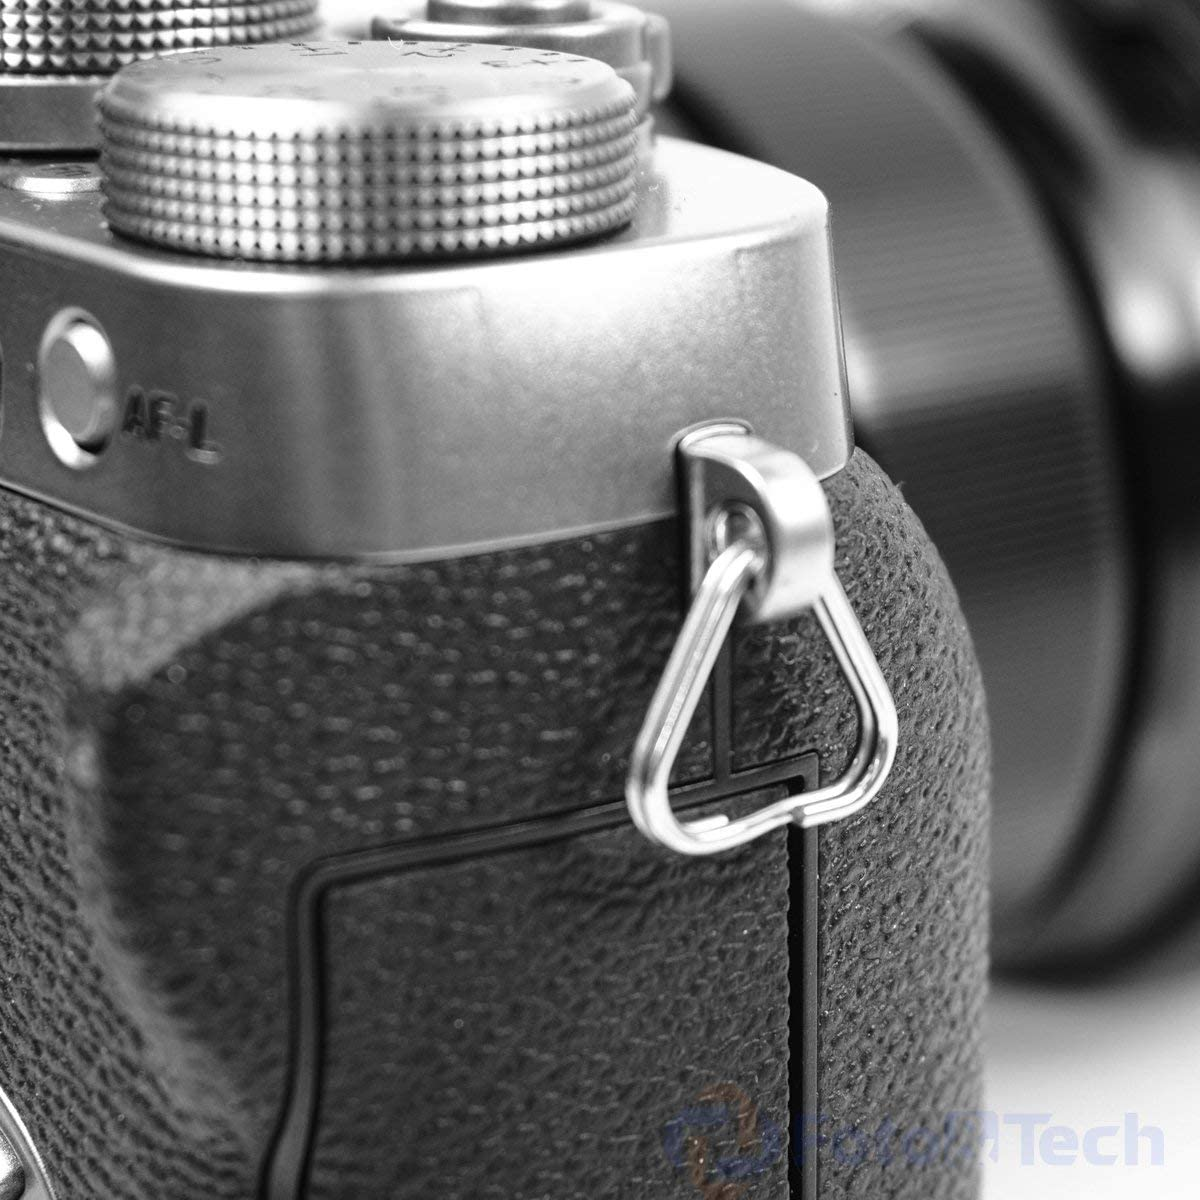 Foto/&Tech Extra Thick Extra Durable 100/% Stainless Steel 4PCS Lug Ring Camera Strap Triangle Split Ring Hook Compatible with Fujifilm Lecia Nikon Canon Sony Olympus Pentax Panasonic SLR RF Mirrorless